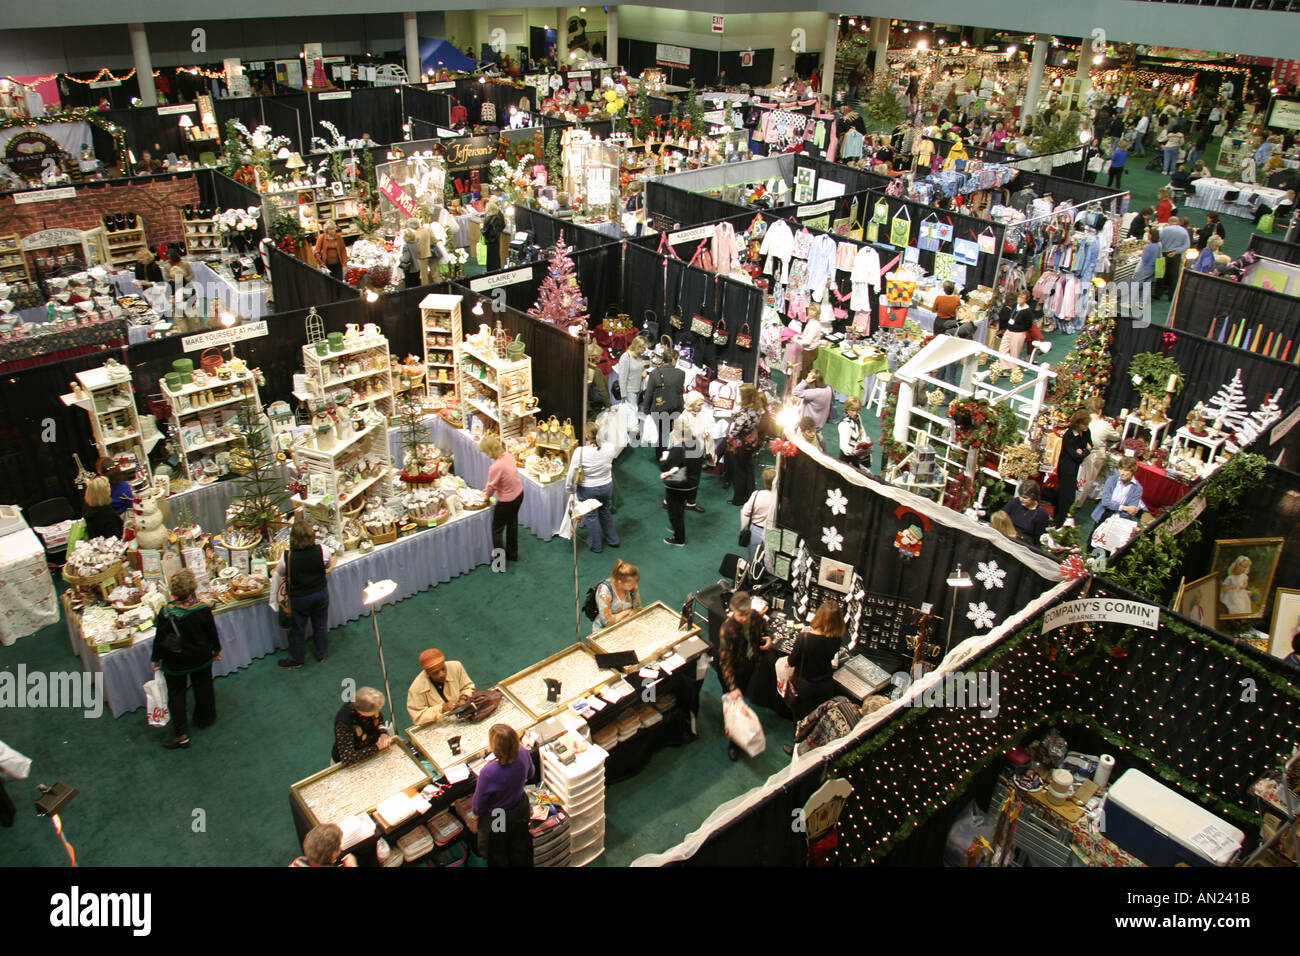 North Carolina, South, Tar Heel State, Wake County, Raleigh Convention Center, centre, shopping shopper shoppers Stock Photo